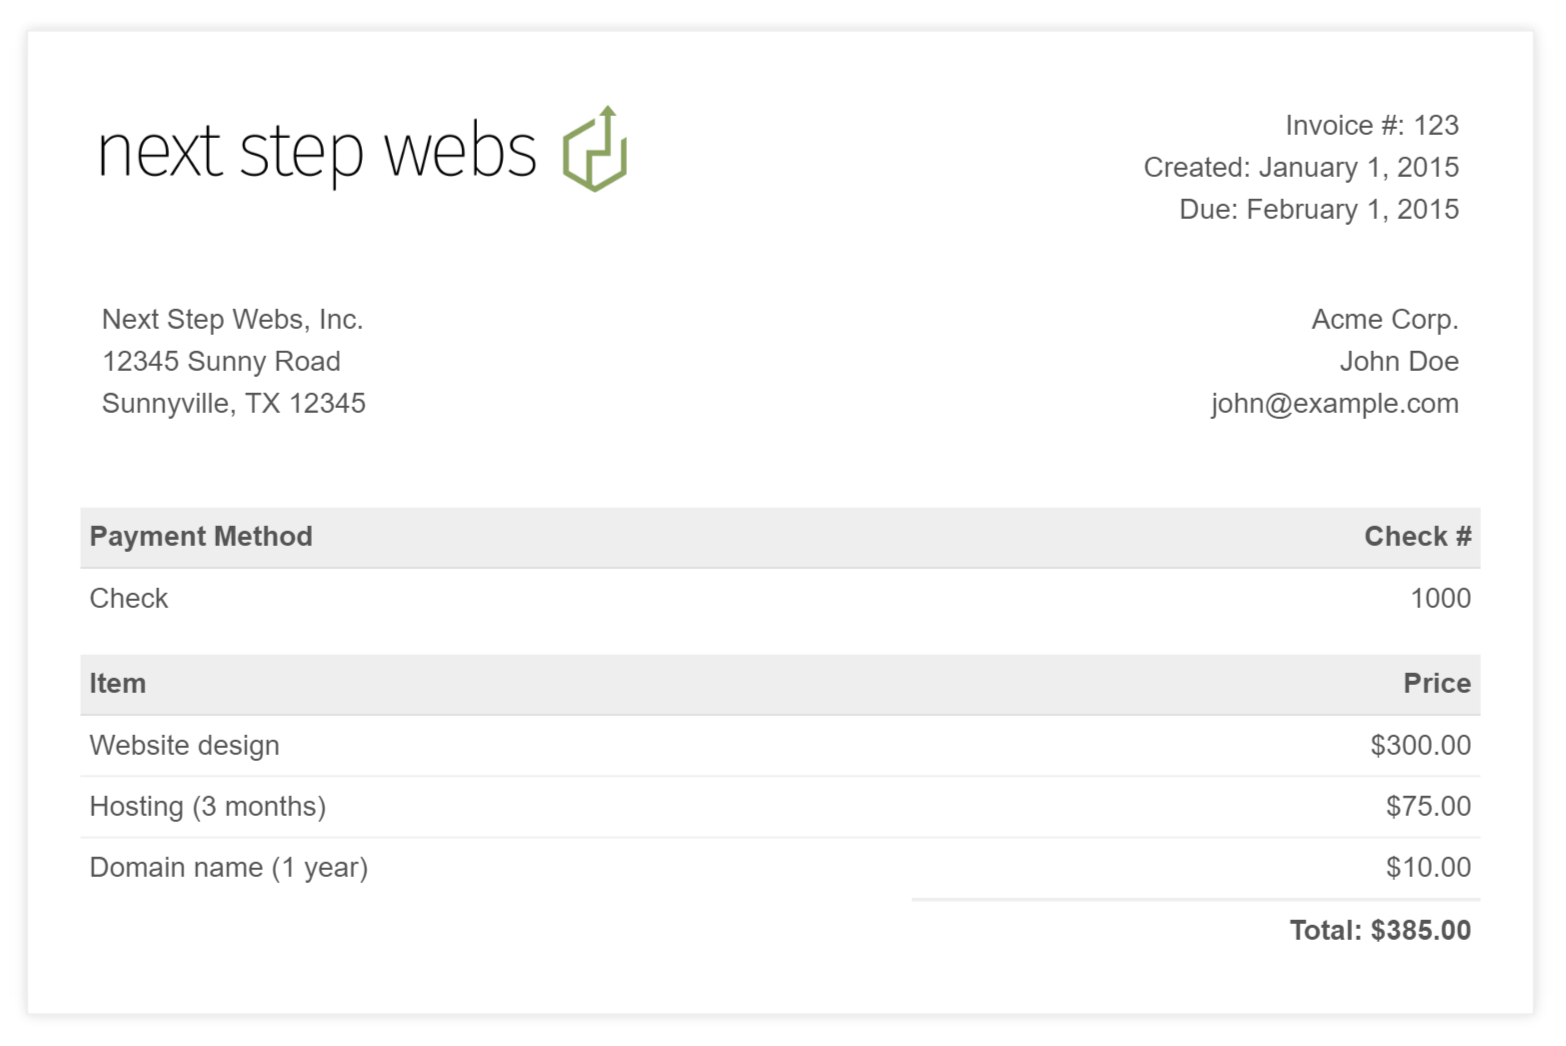 Hucareus  Pretty Simple Invoice Template Free Bill Format In Word Format Simple  With Handsome Github  Nextstepwebssimplehtmlinvoicetemplate A Modern  With Comely Receipt Copy Sample Also Lic Premium Paid Receipt In Addition Receipts And Payments Format And Customised Receipt Books As Well As Shop Receipt Template Additionally Delaware Gross Receipts Tax Return From Happytomco With Hucareus  Handsome Simple Invoice Template Free Bill Format In Word Format Simple  With Comely Github  Nextstepwebssimplehtmlinvoicetemplate A Modern  And Pretty Receipt Copy Sample Also Lic Premium Paid Receipt In Addition Receipts And Payments Format From Happytomco